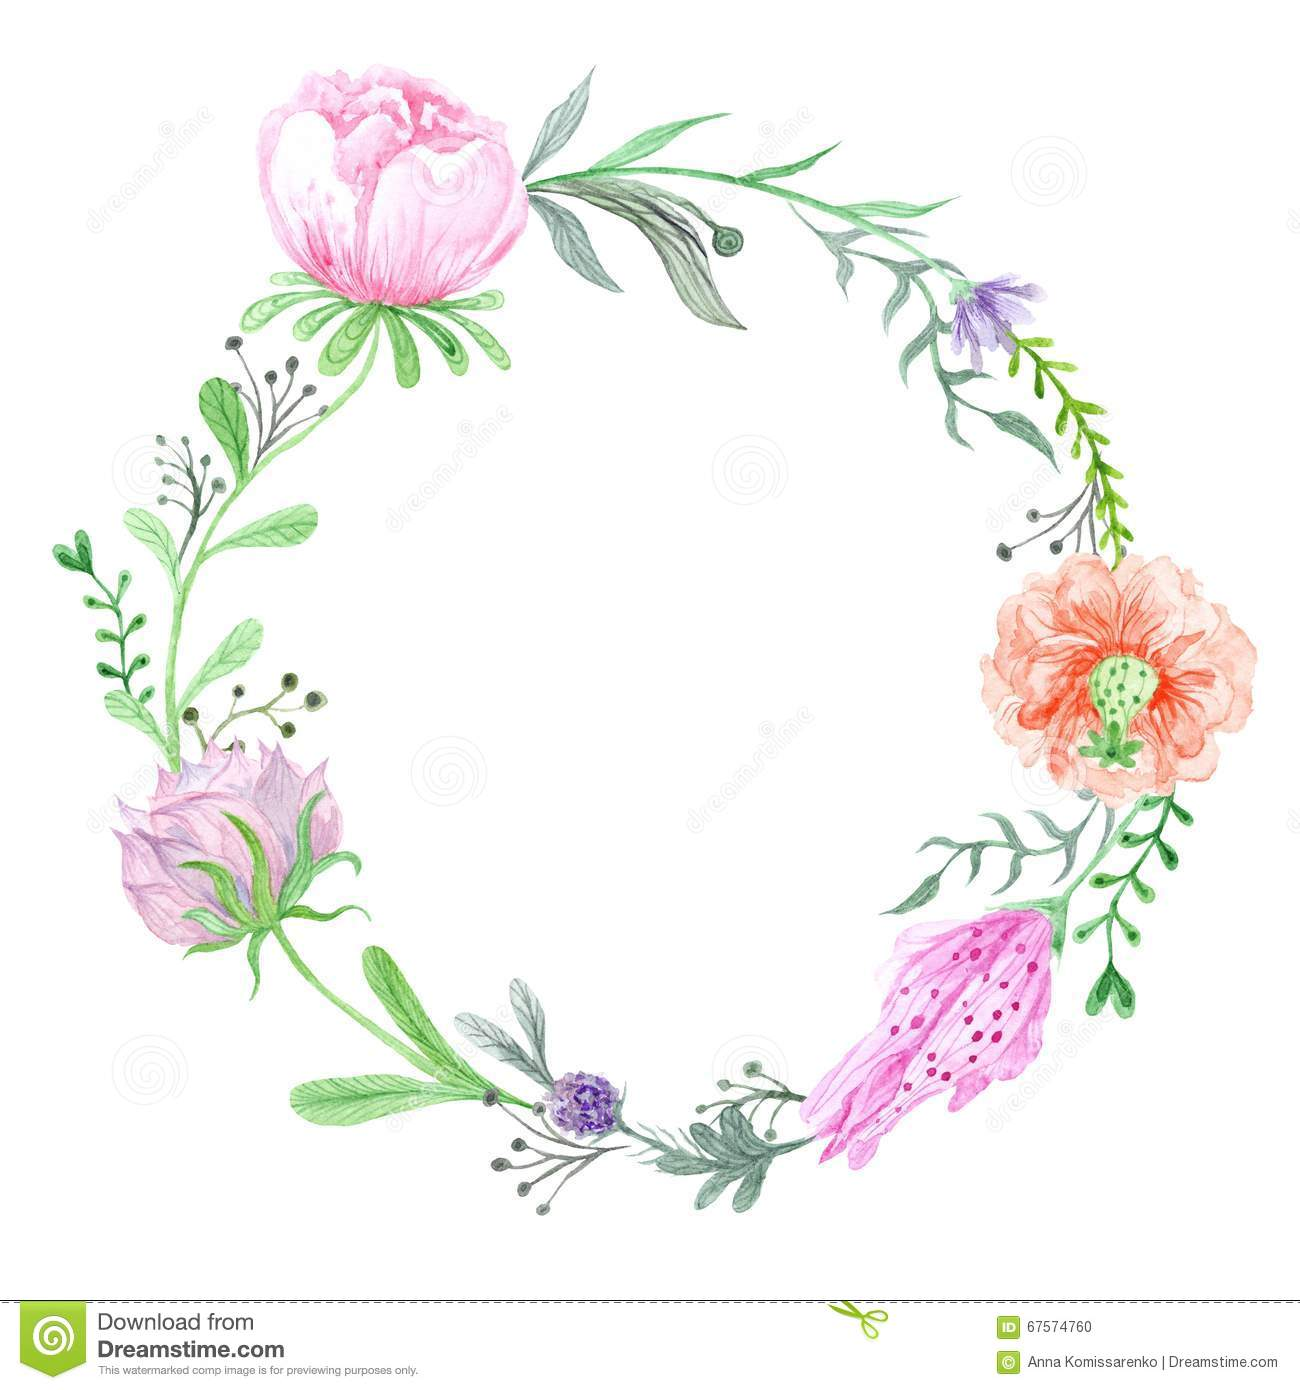 Wreath clipart spring wreath Wreath collection spring Watercolor clipart